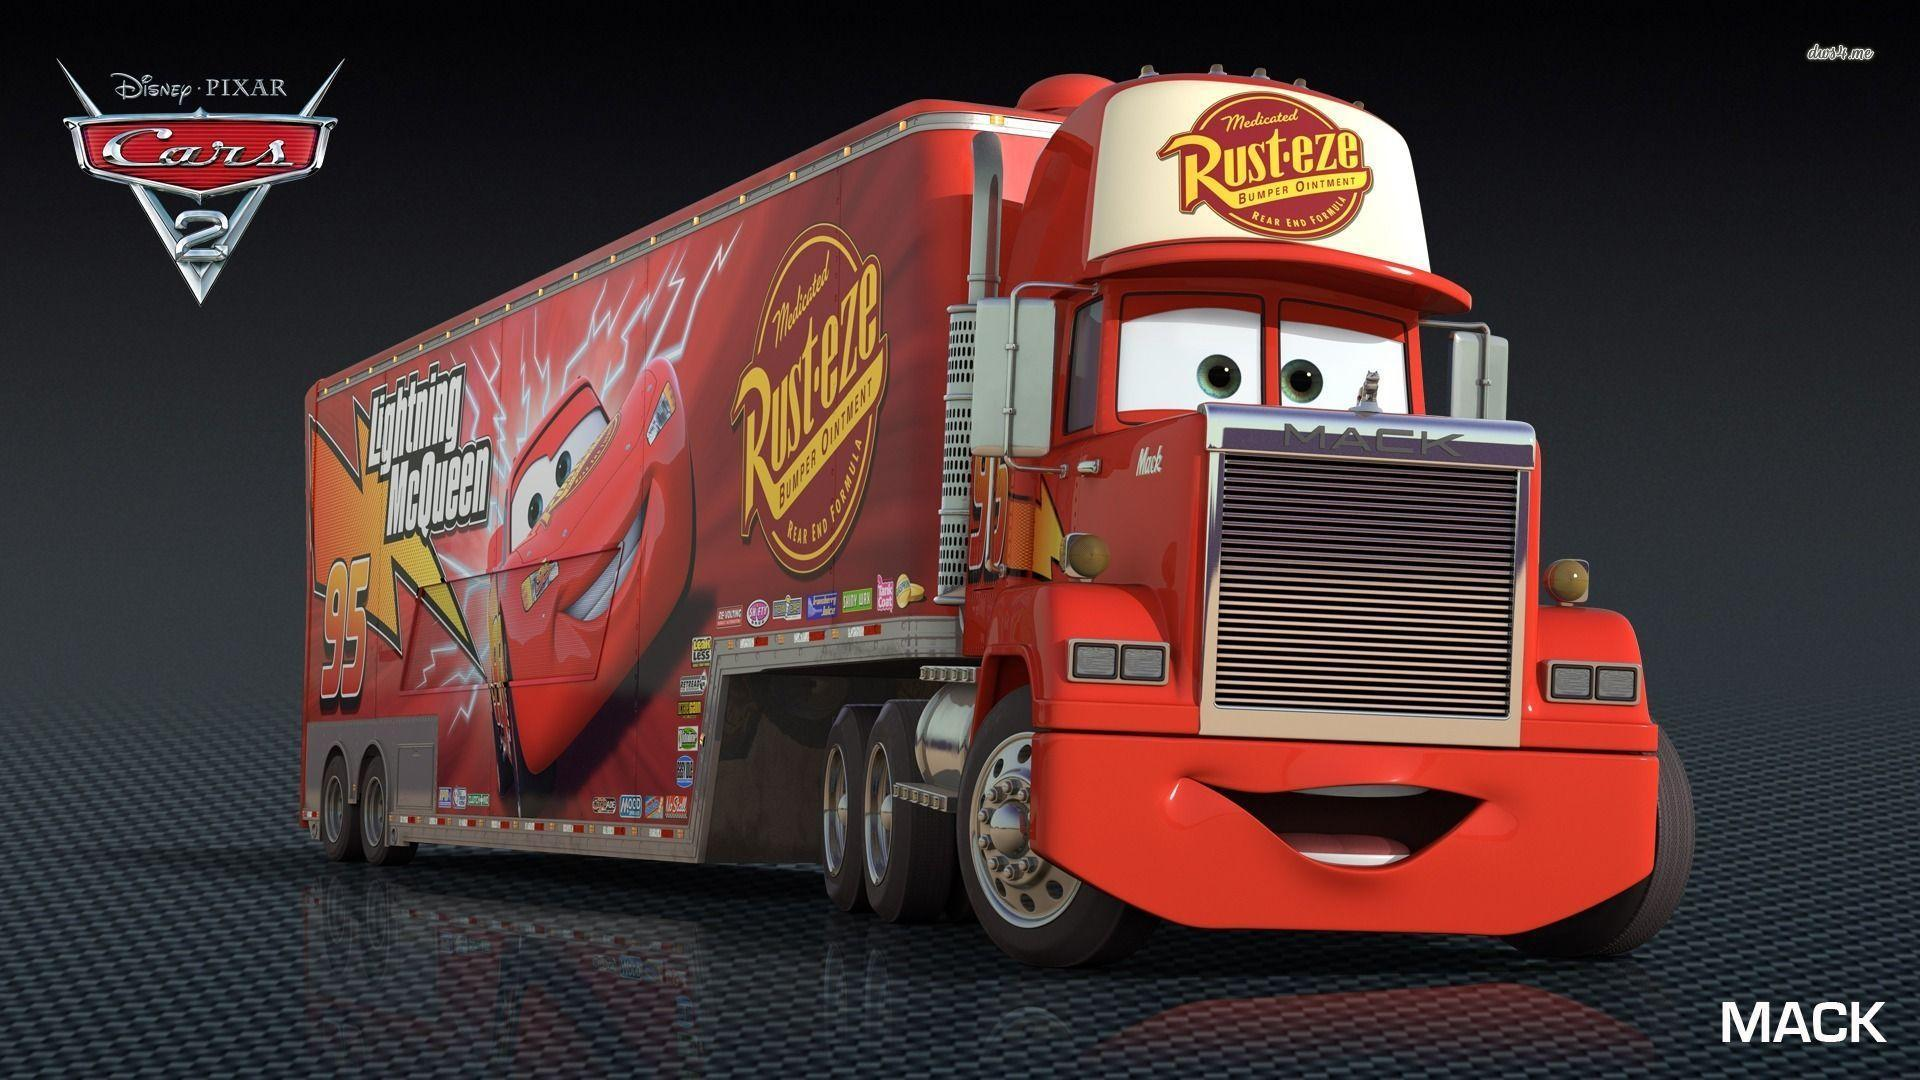 Mack - Cars 2 wallpaper - Cartoon wallpapers - #